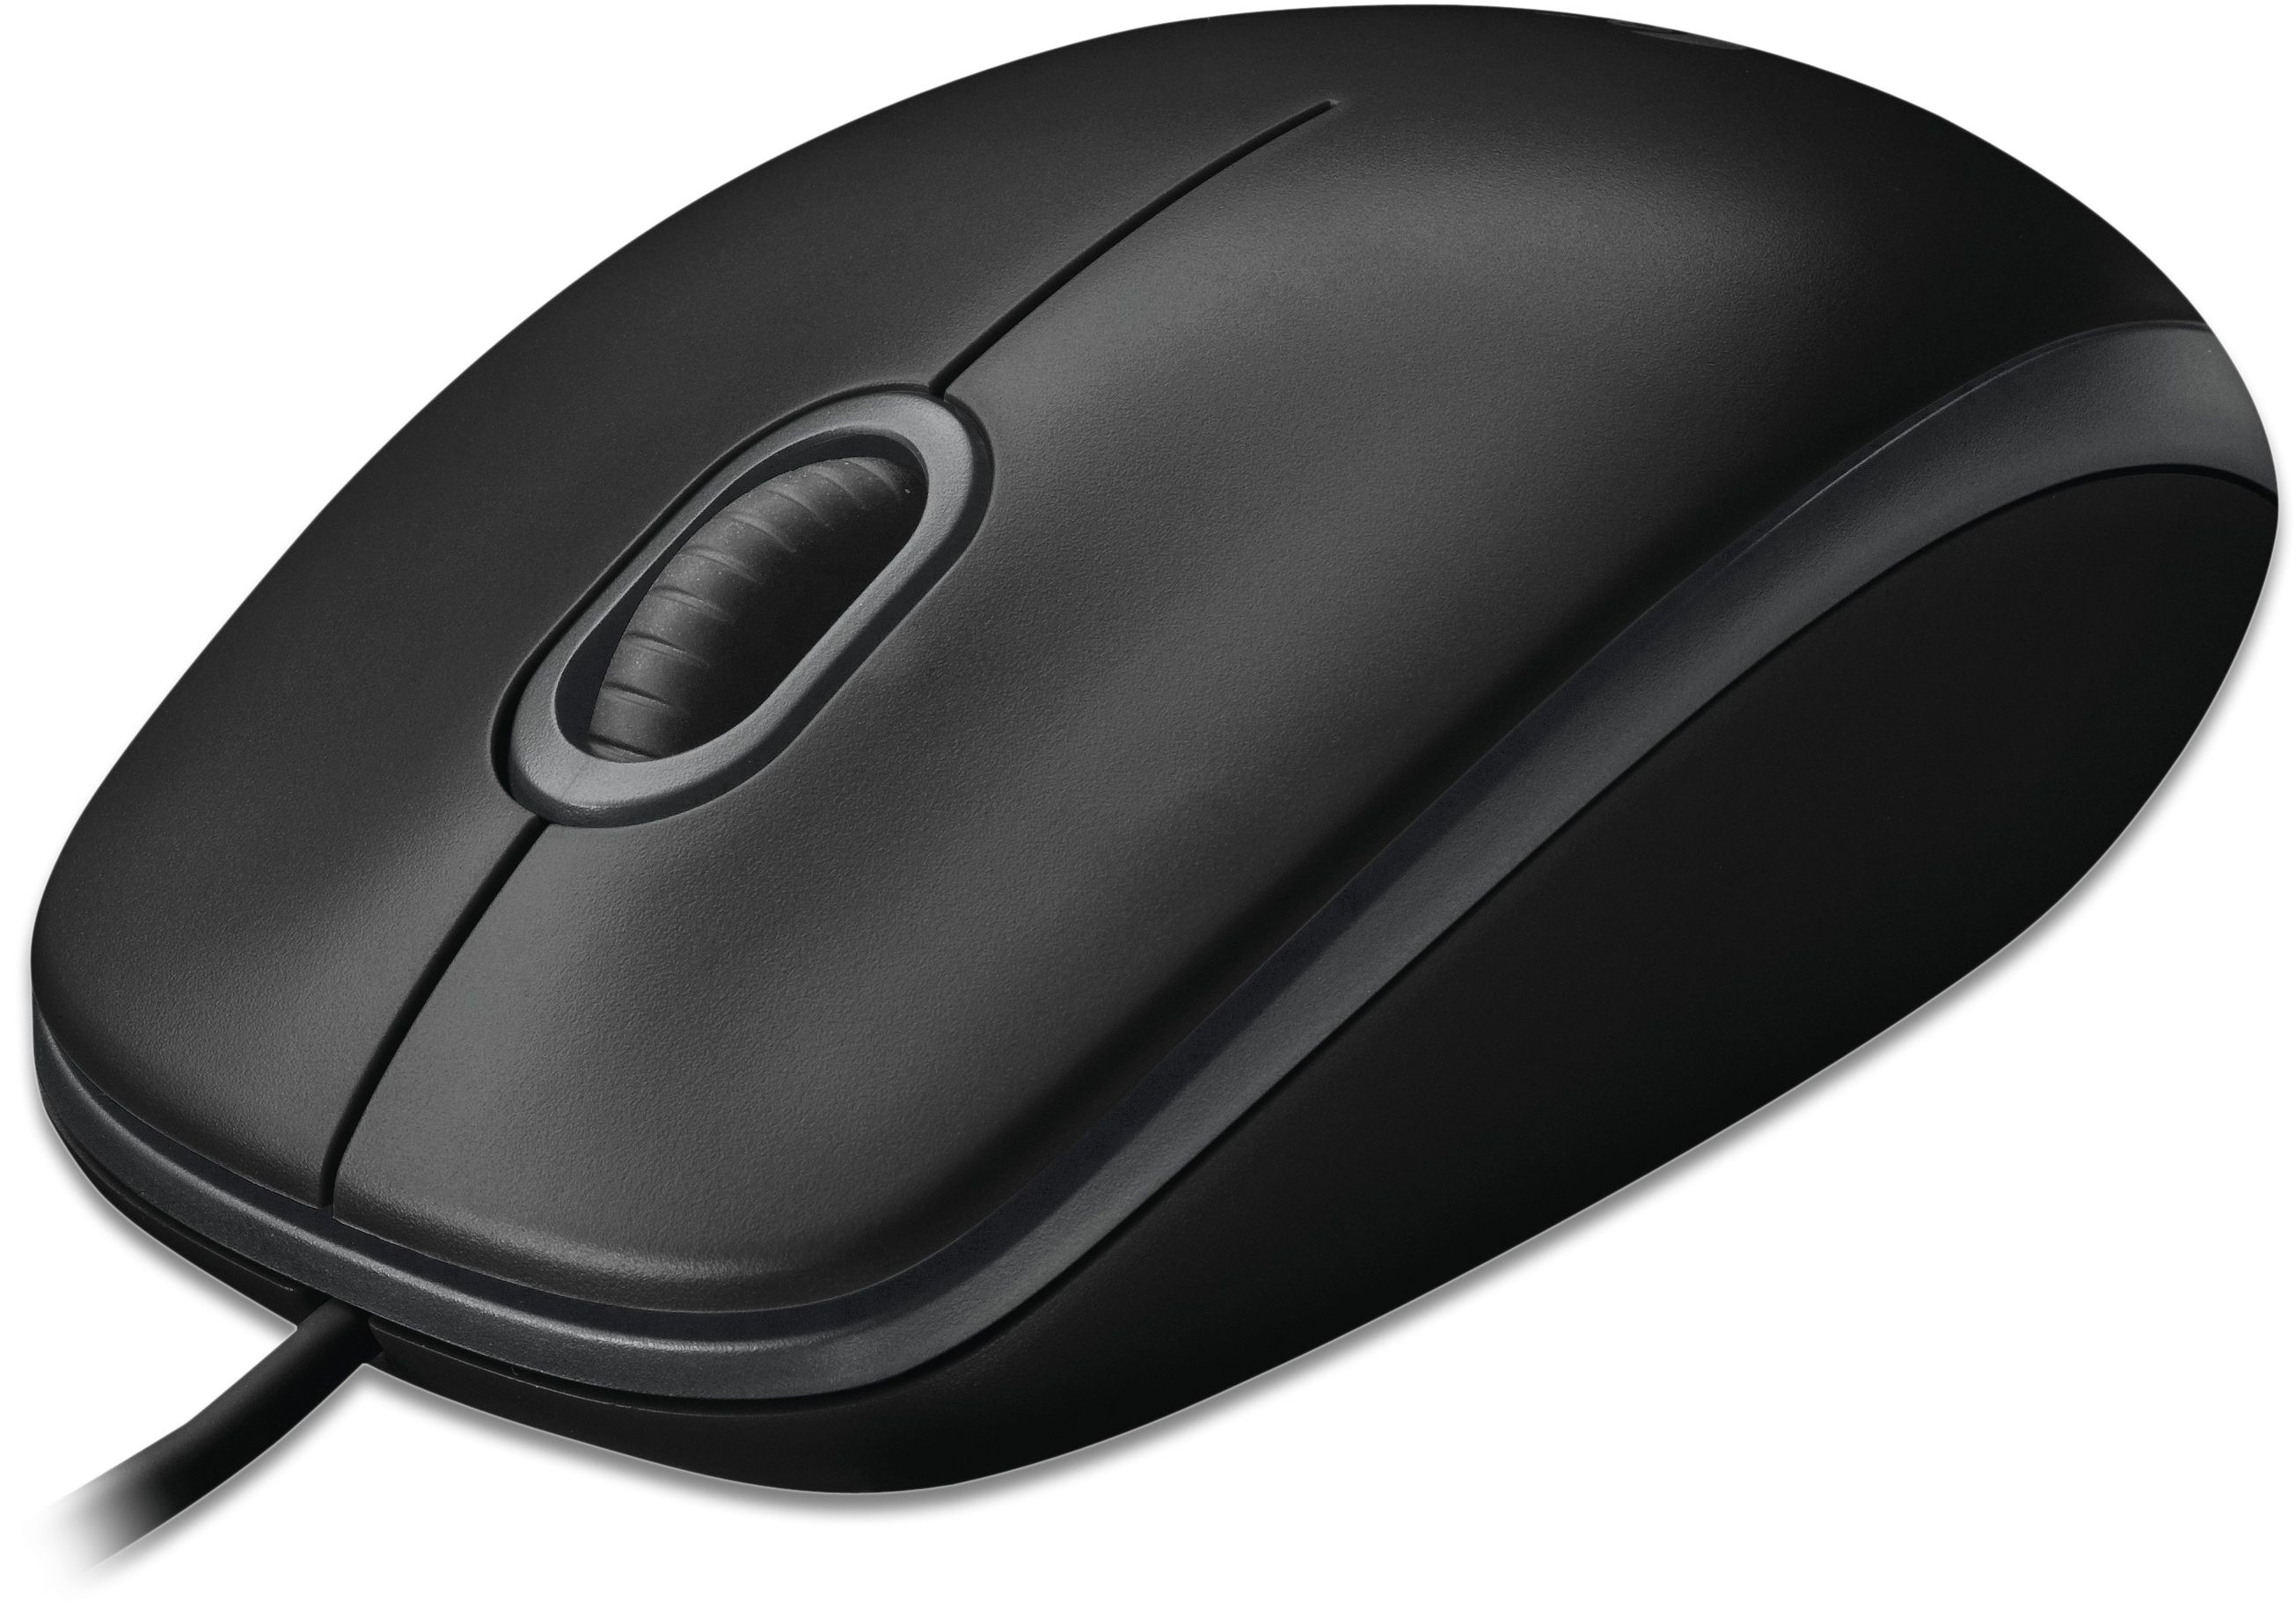 B100 Wired Optical USB Mouse